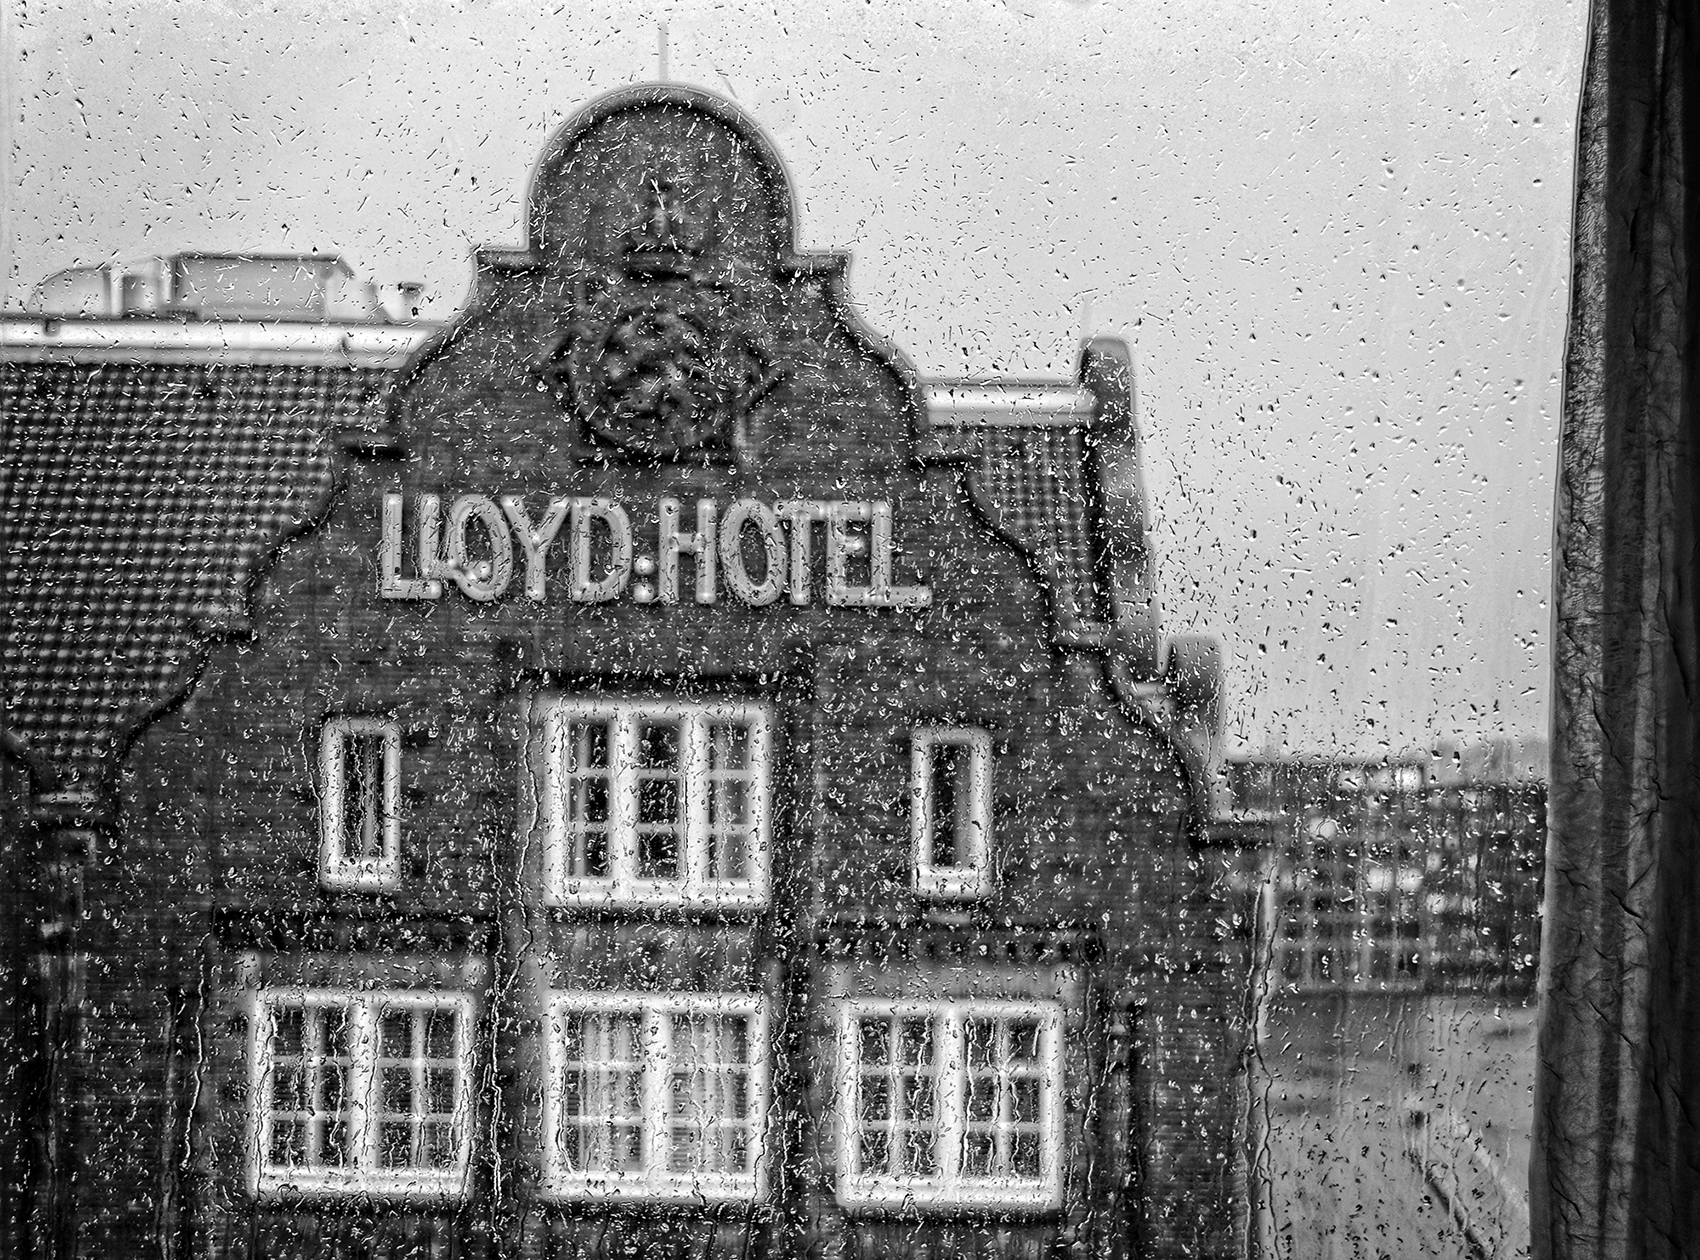 Lloyd Hotel, Amsterdam, the Netherlands